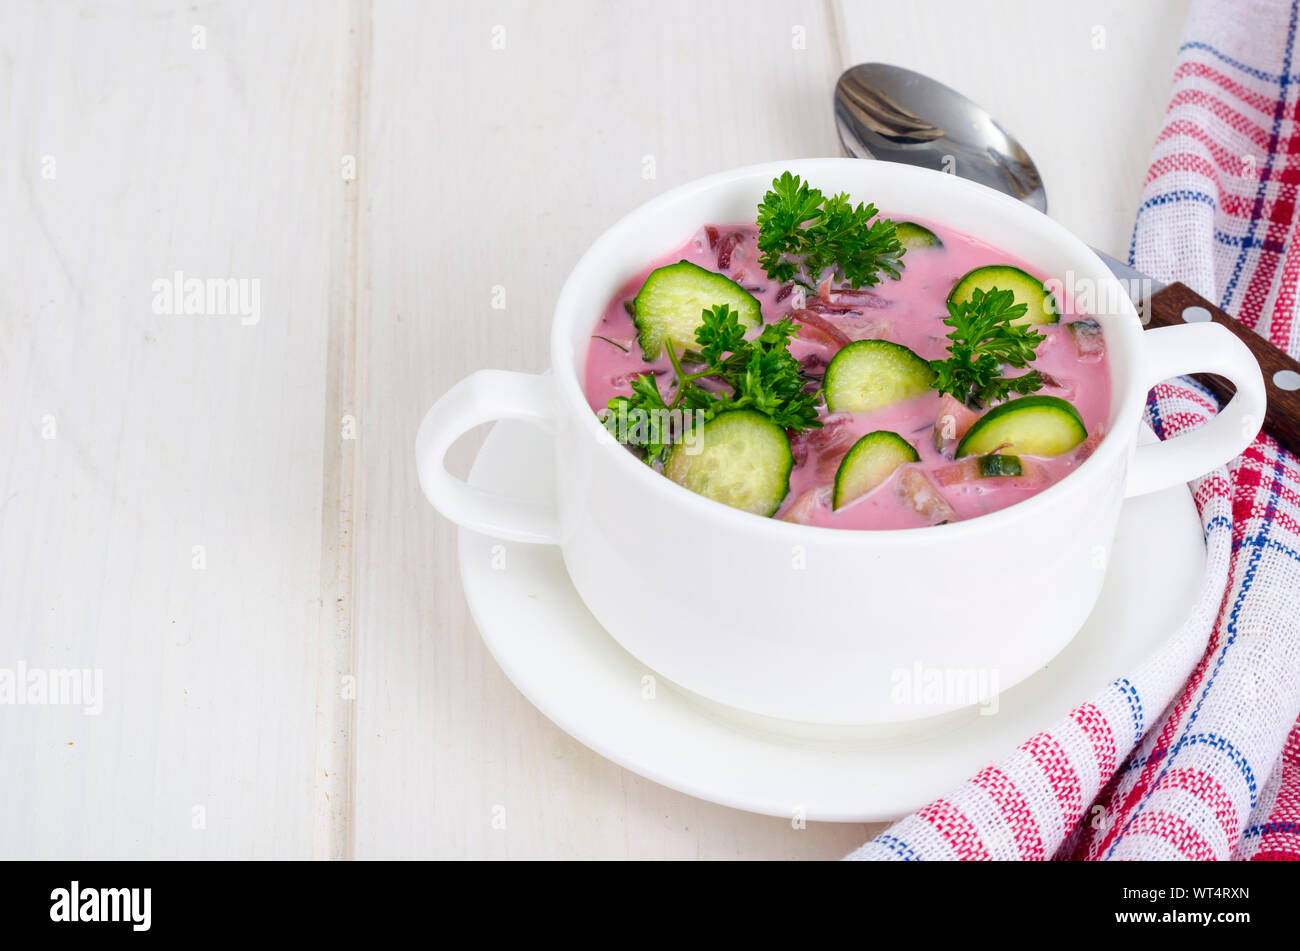 Cold beet soup with cucumbers. Studio Photo Stock Photo